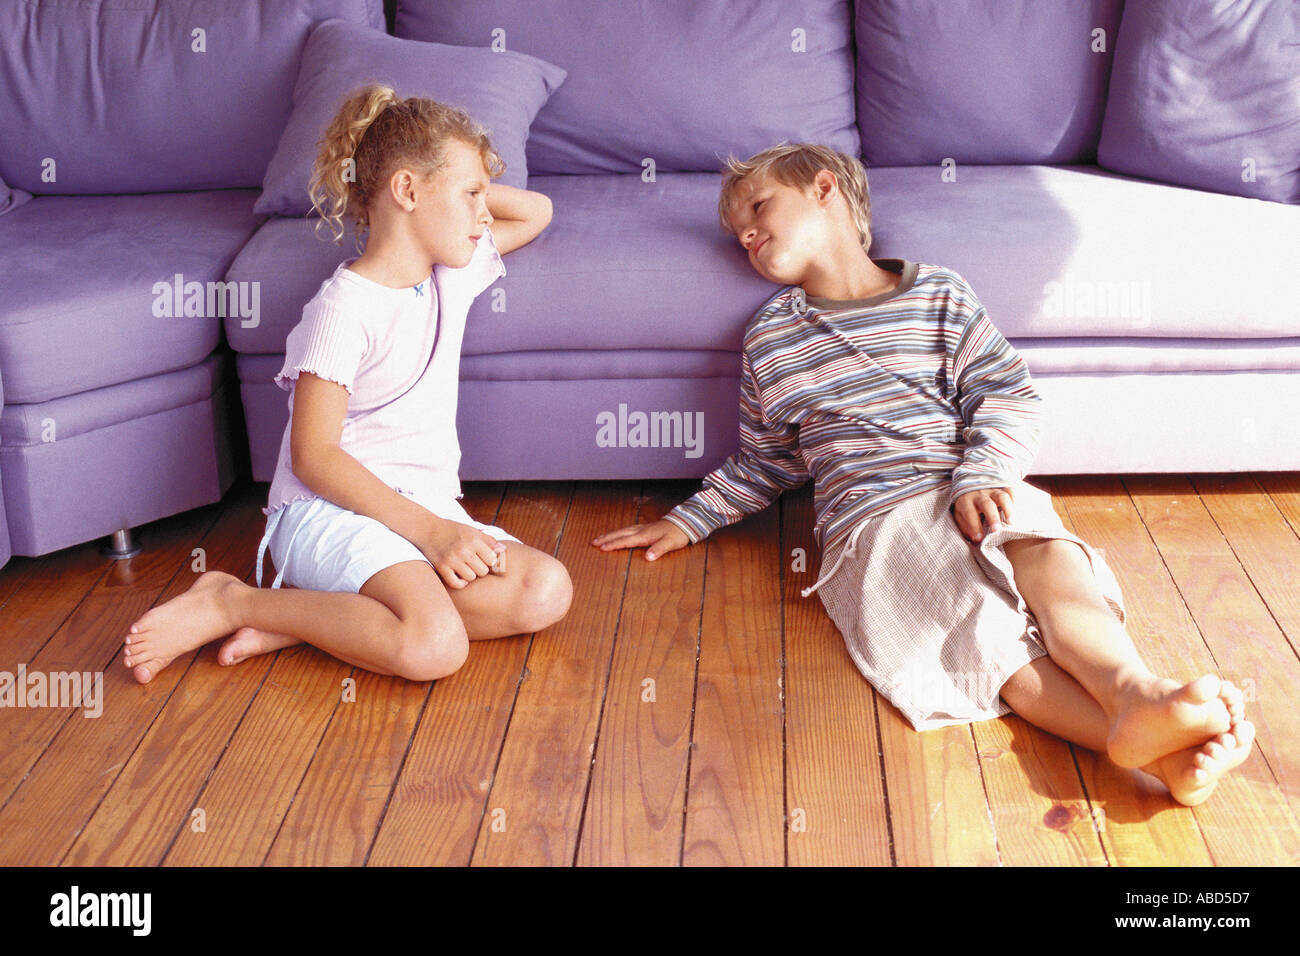 Girl and boy sitting against sofa - Stock Image